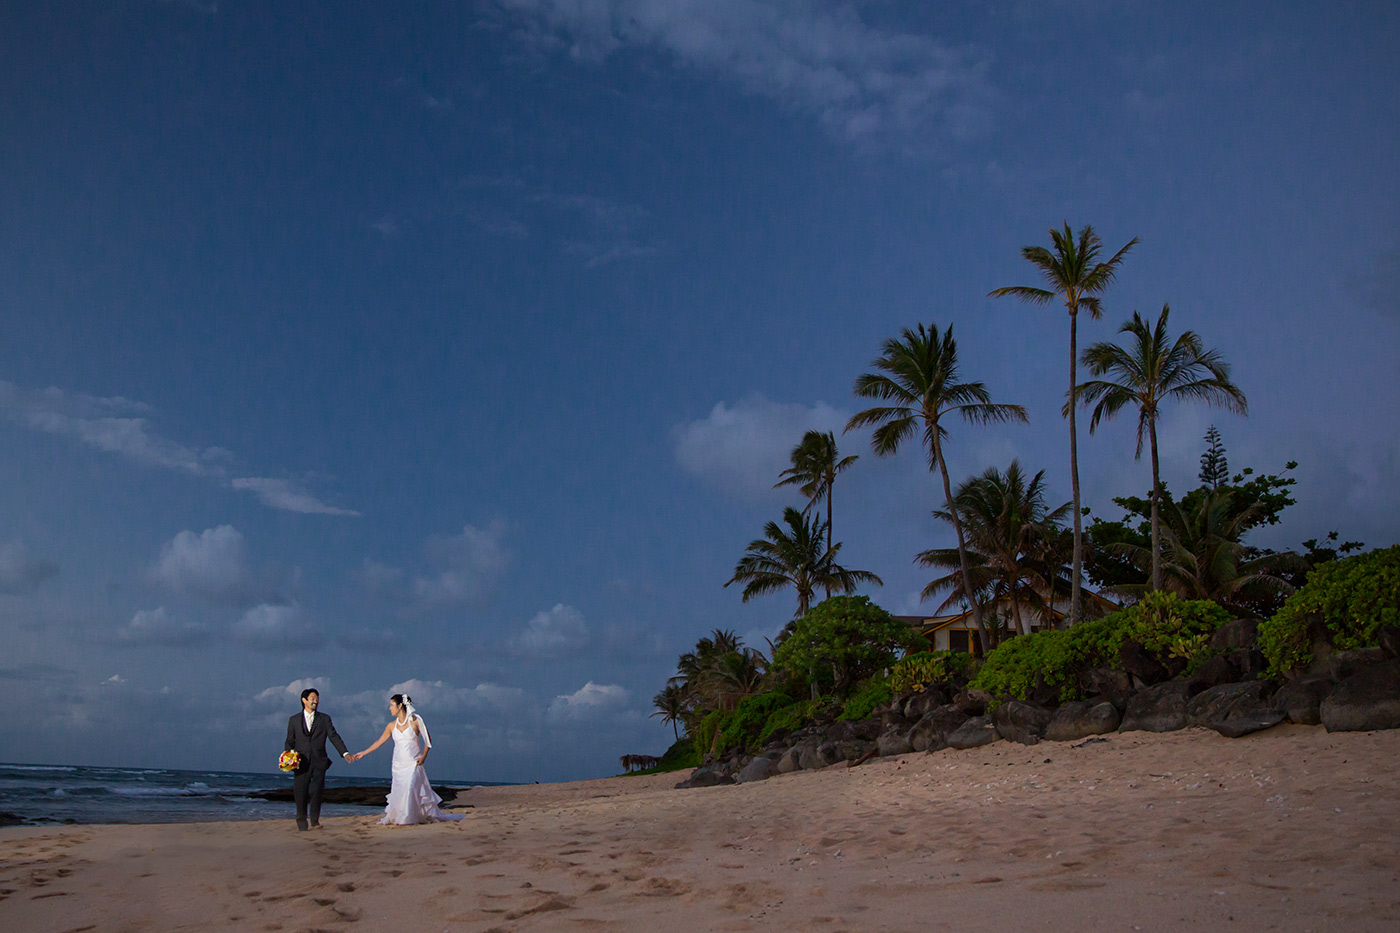 Click here for more images from this wedding